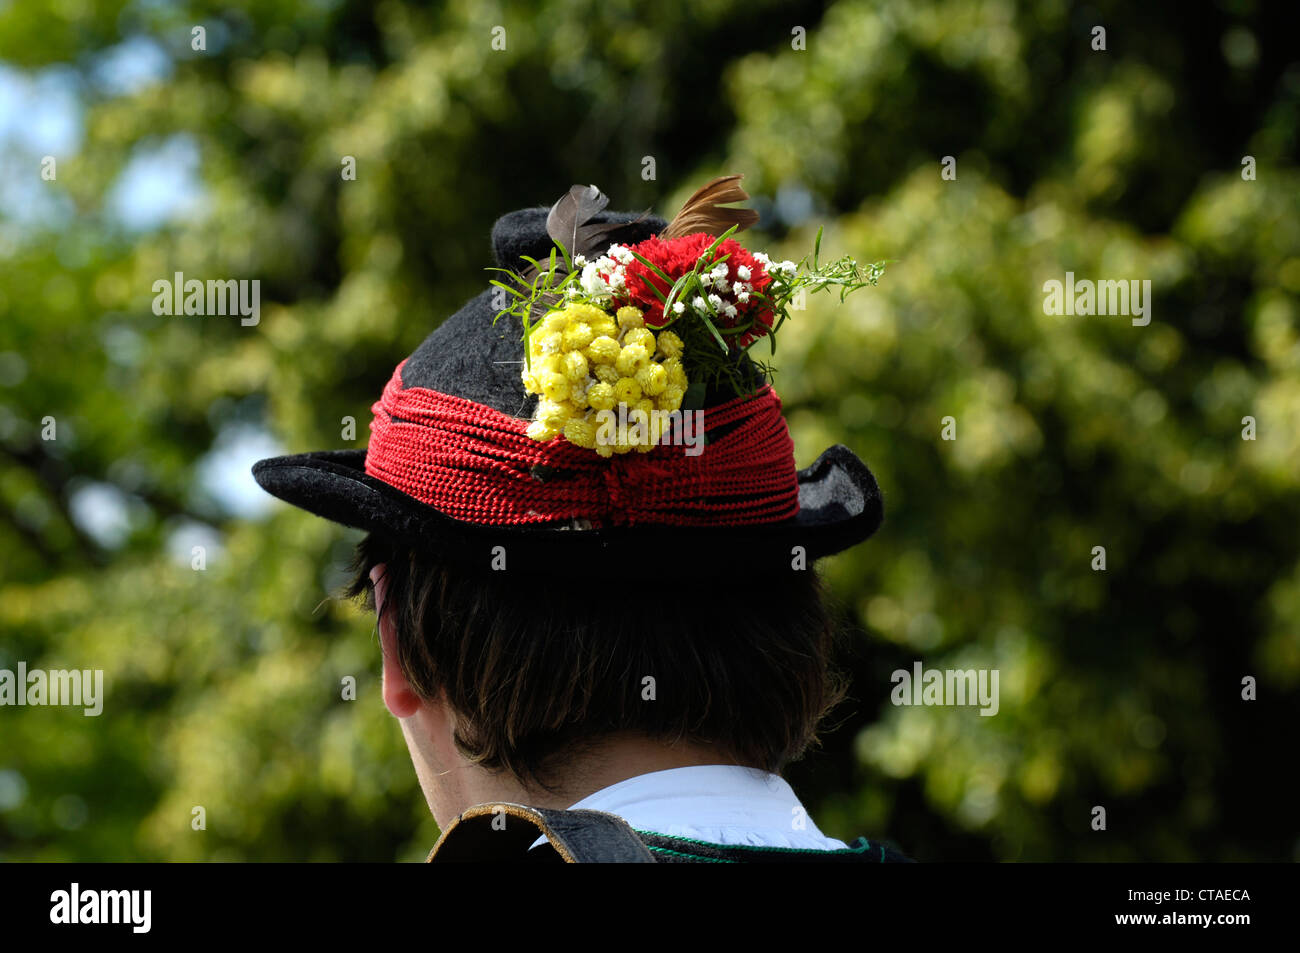 Hat decorated with flowers, man wearing Sarentino costume, South Tyrol, Trentino-Alto Adige, Italy - Stock Image